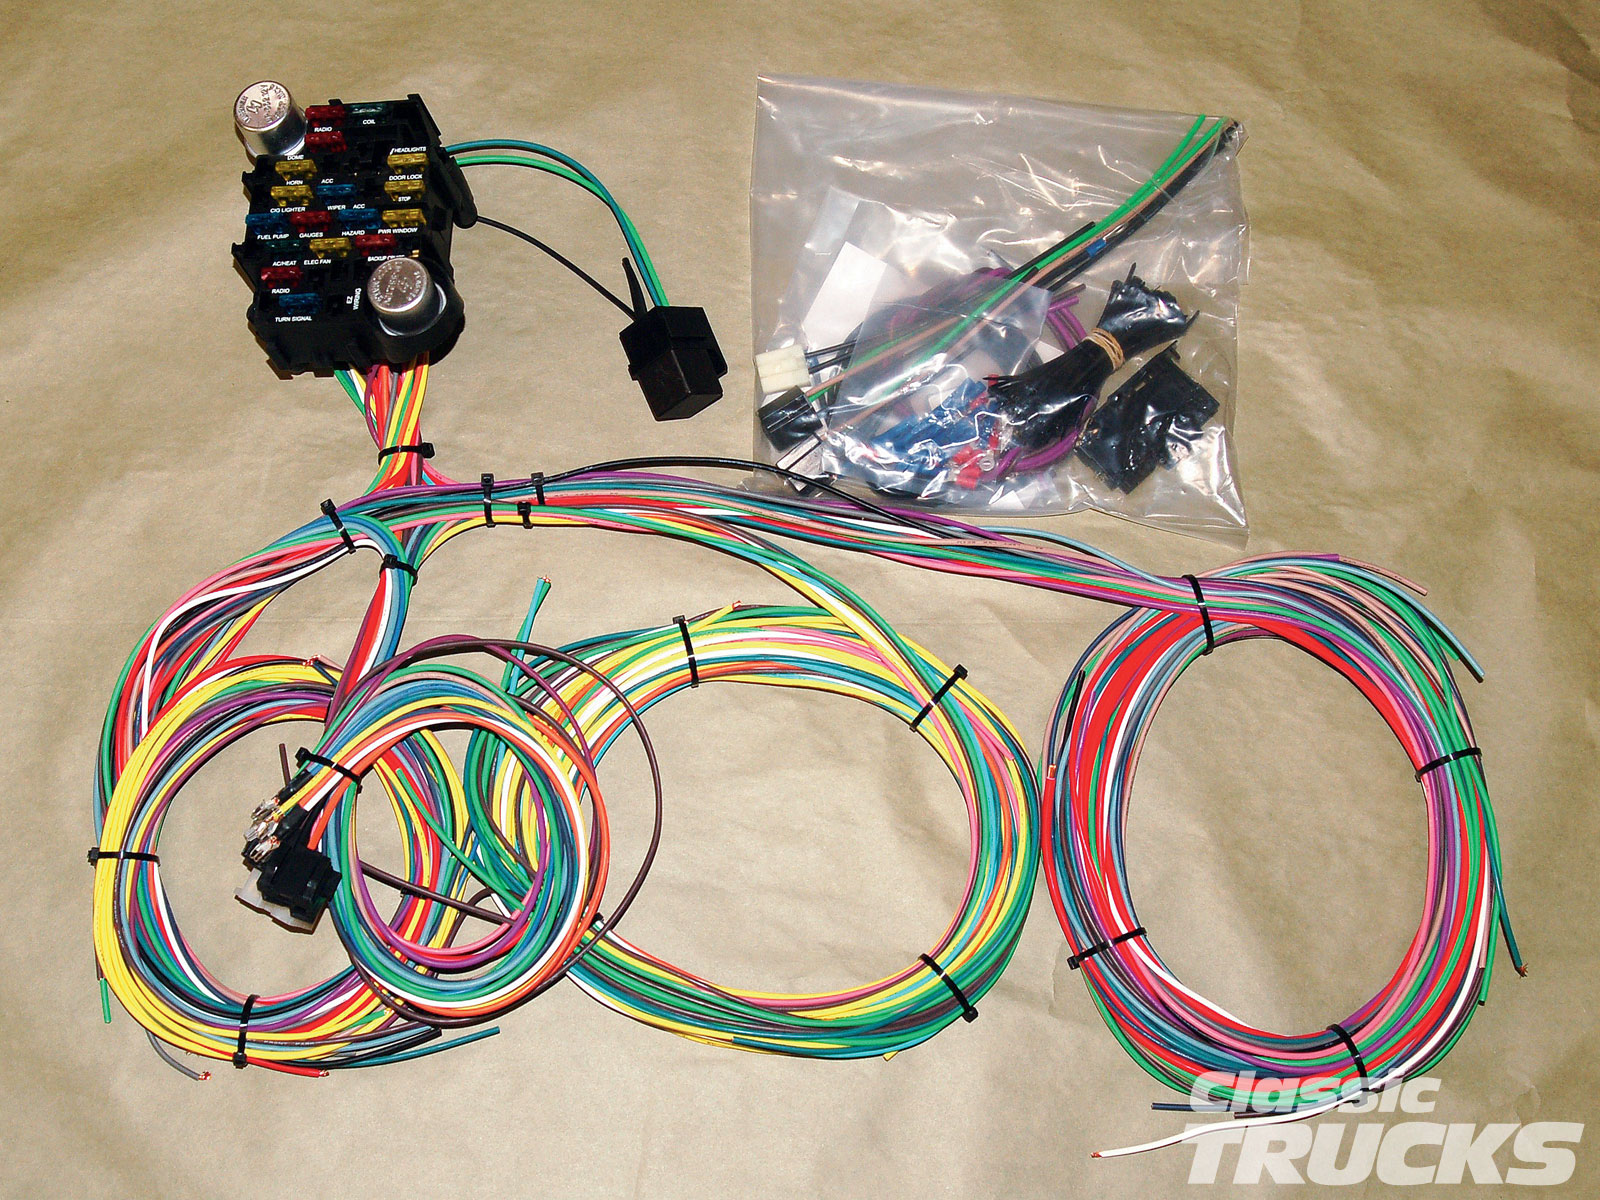 1010clt 02 o aftermarket wiring harness install kit?resize\\\=665%2C499 painless wiring harness australia tamahuproject org painless wiring harness australia at eliteediting.co